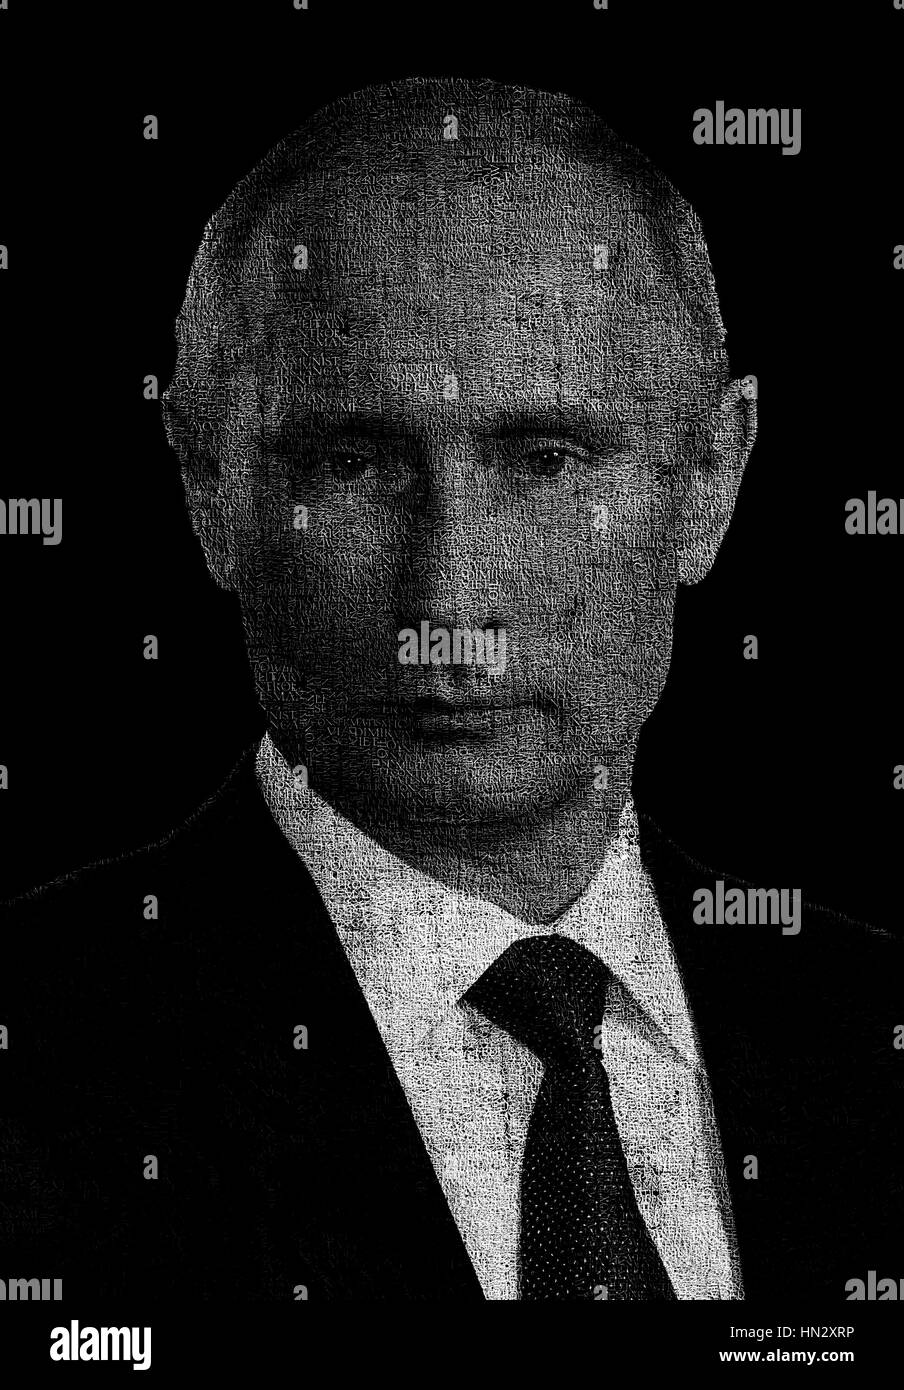 Illustration featuring Russia president Vladimir Putin made with words often used during his speeches. - Stock Image